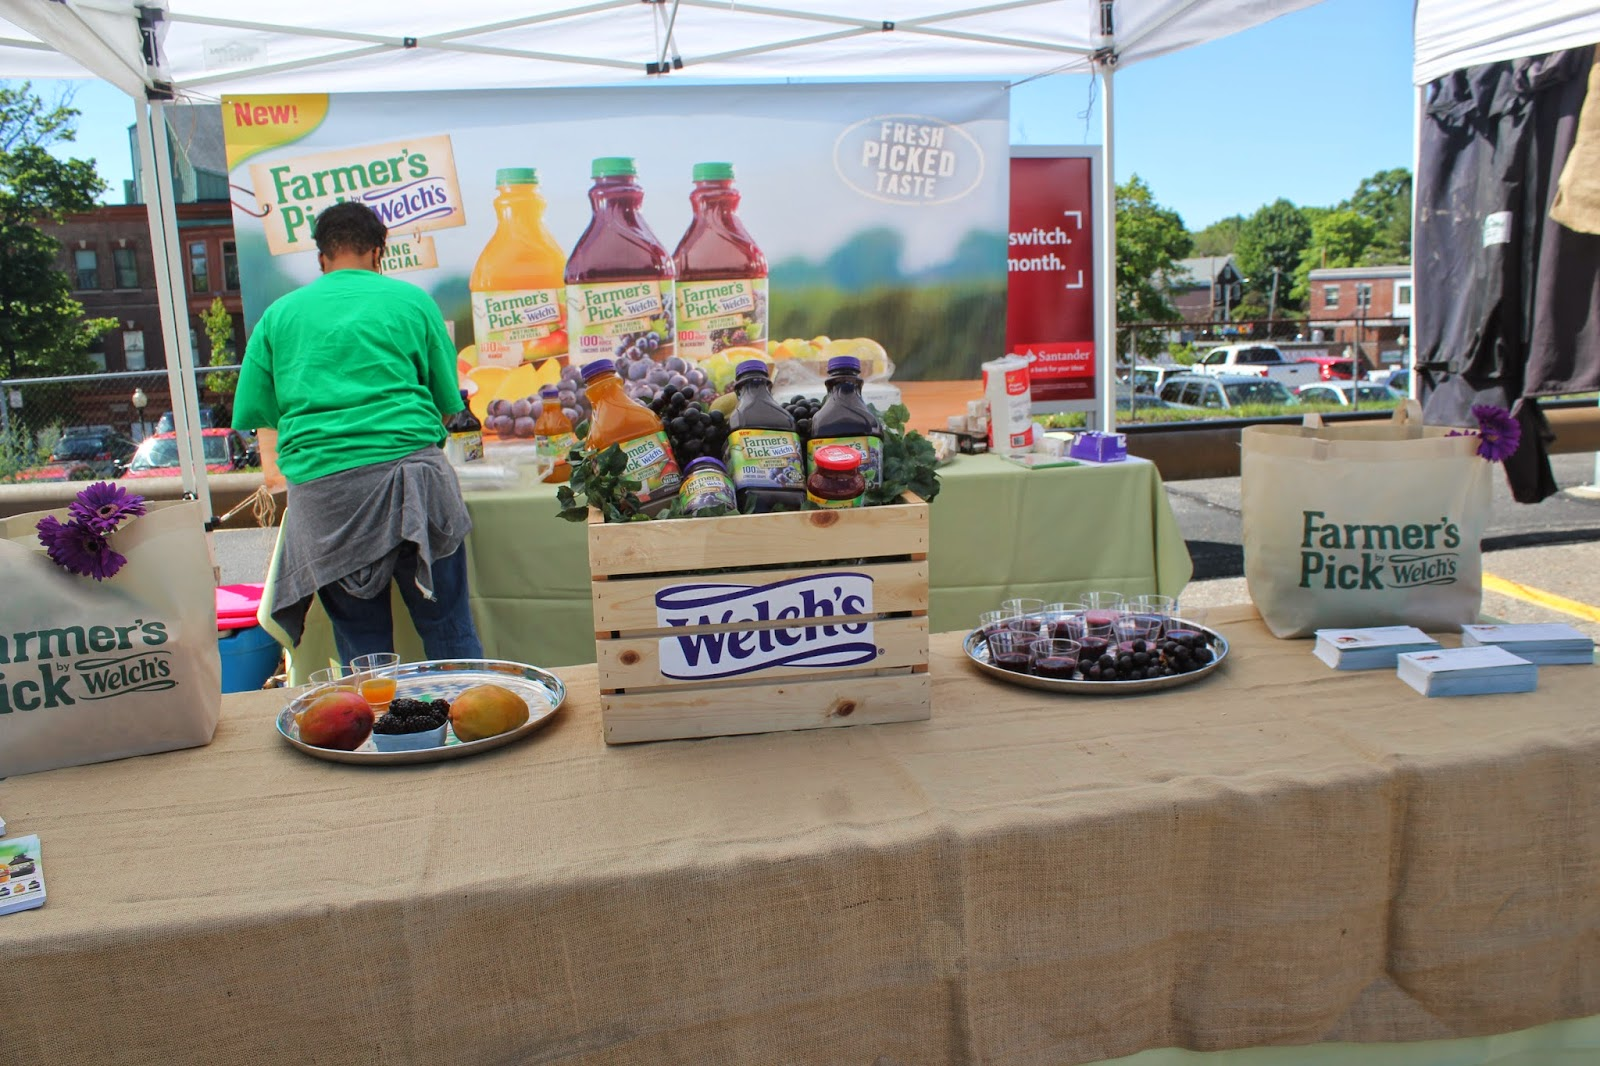 Welch's stand at the Roslindale Village Main Street Farmers' Market